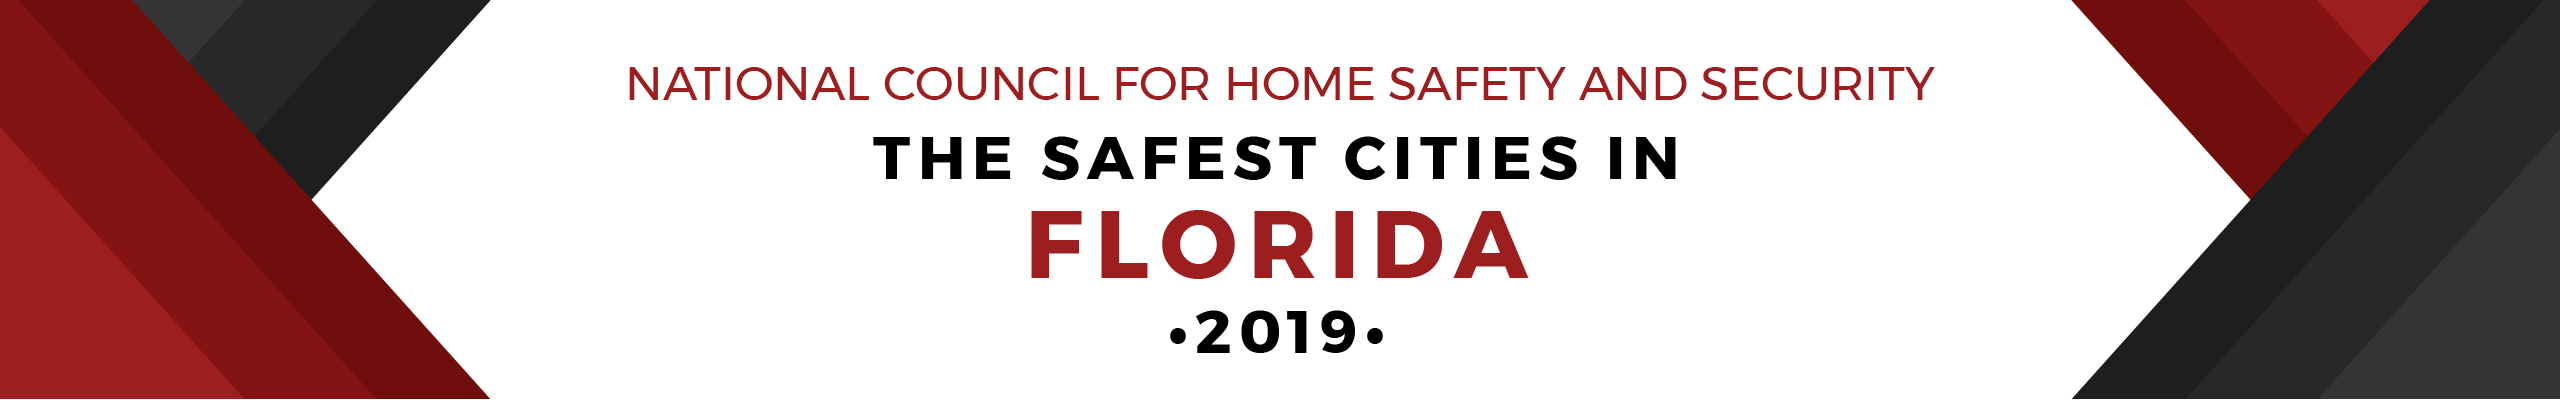 Safest Cities Florida - header